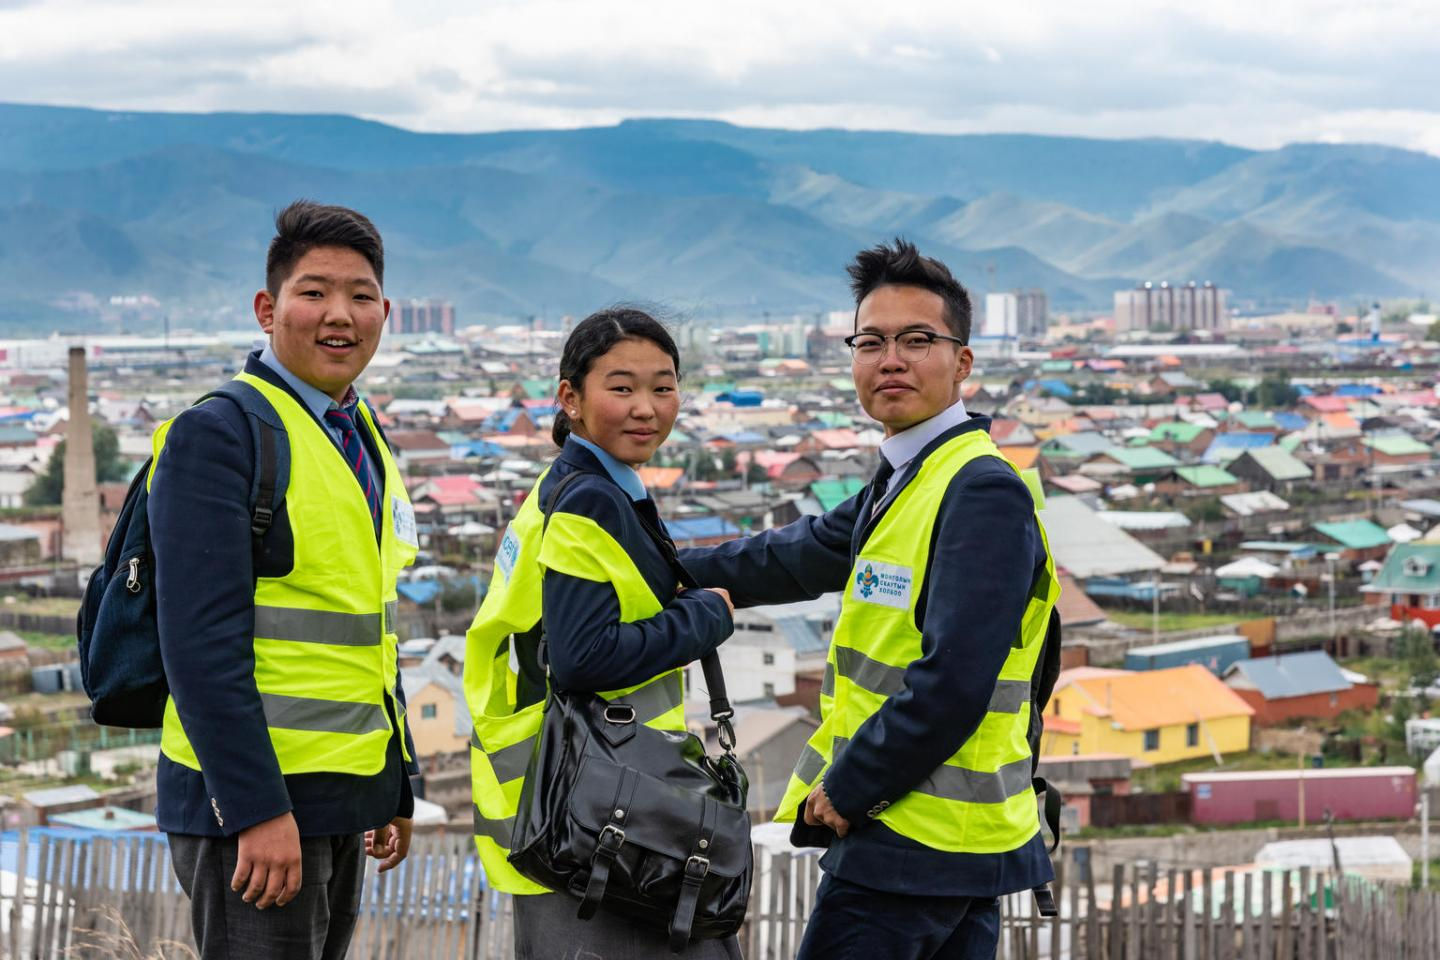 Adolescents in Ulaanbaatar, Mongolia, collect air pollution data as part of the Air Pollution Youth Mappers programme. Equipped with portable monitors provided by UNICEF, they walk through their communities to measure air quality.